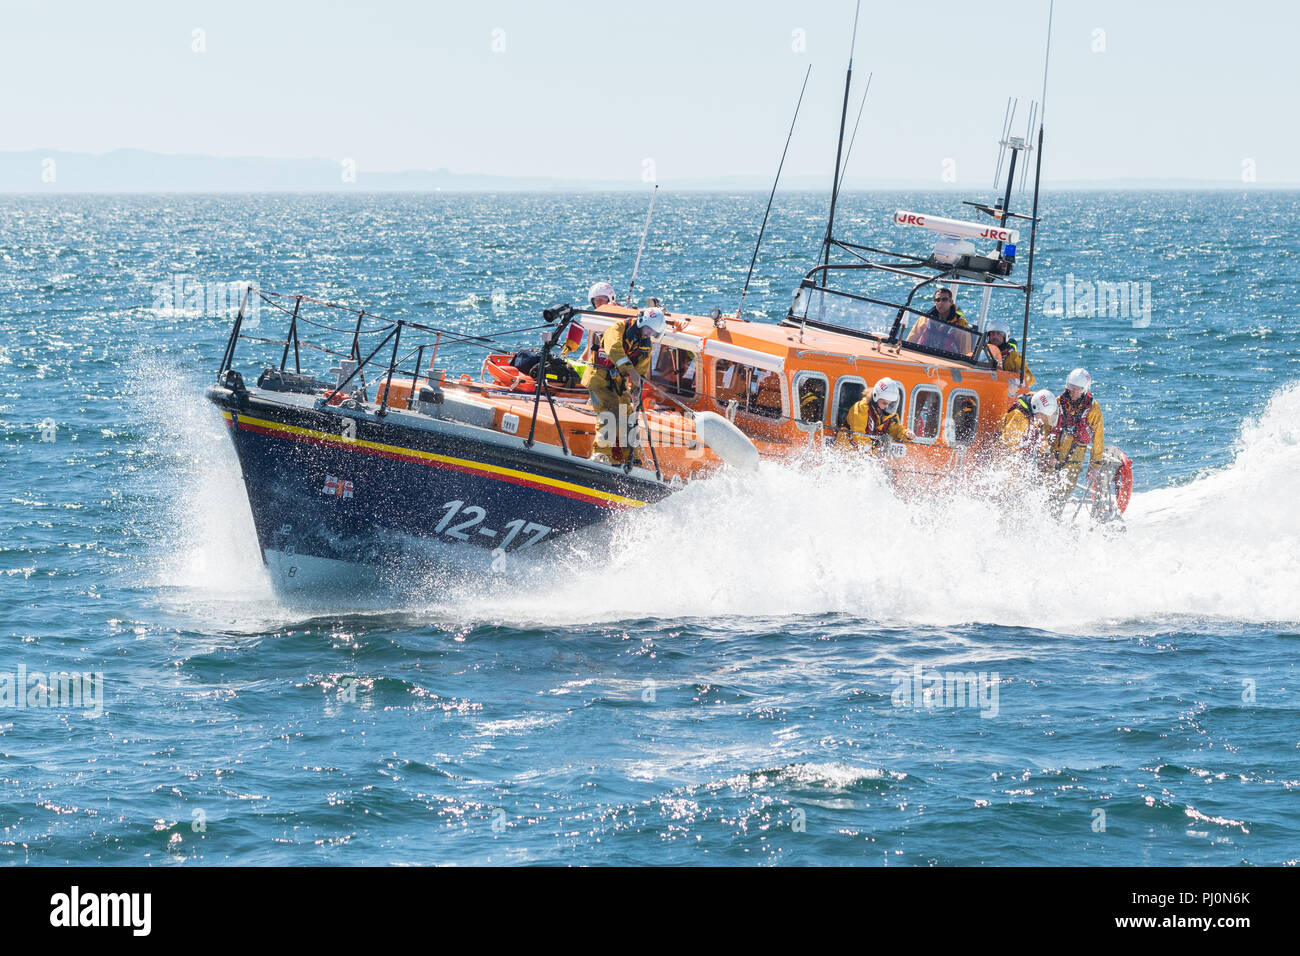 RNLI Lifeboat 'Kingdom of Fife' on an emergency call out from Anstruther Lifeboat Station, Fife, Scotland to an injured visitor on the Isle of May - Stock Image